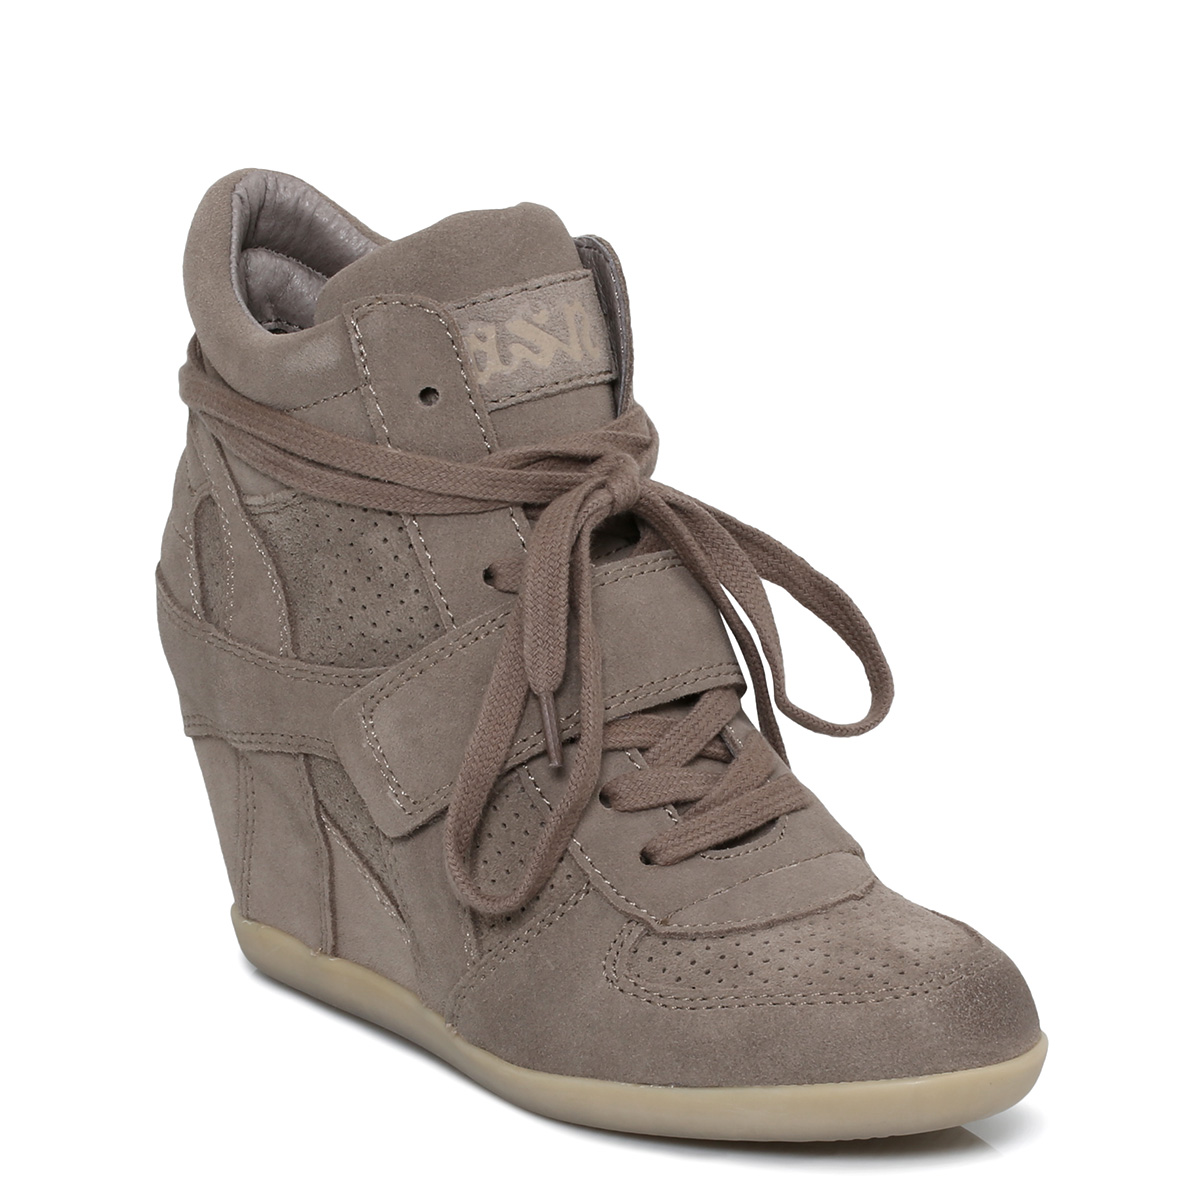 ash bowie beige suede womens wedges trainers shoes